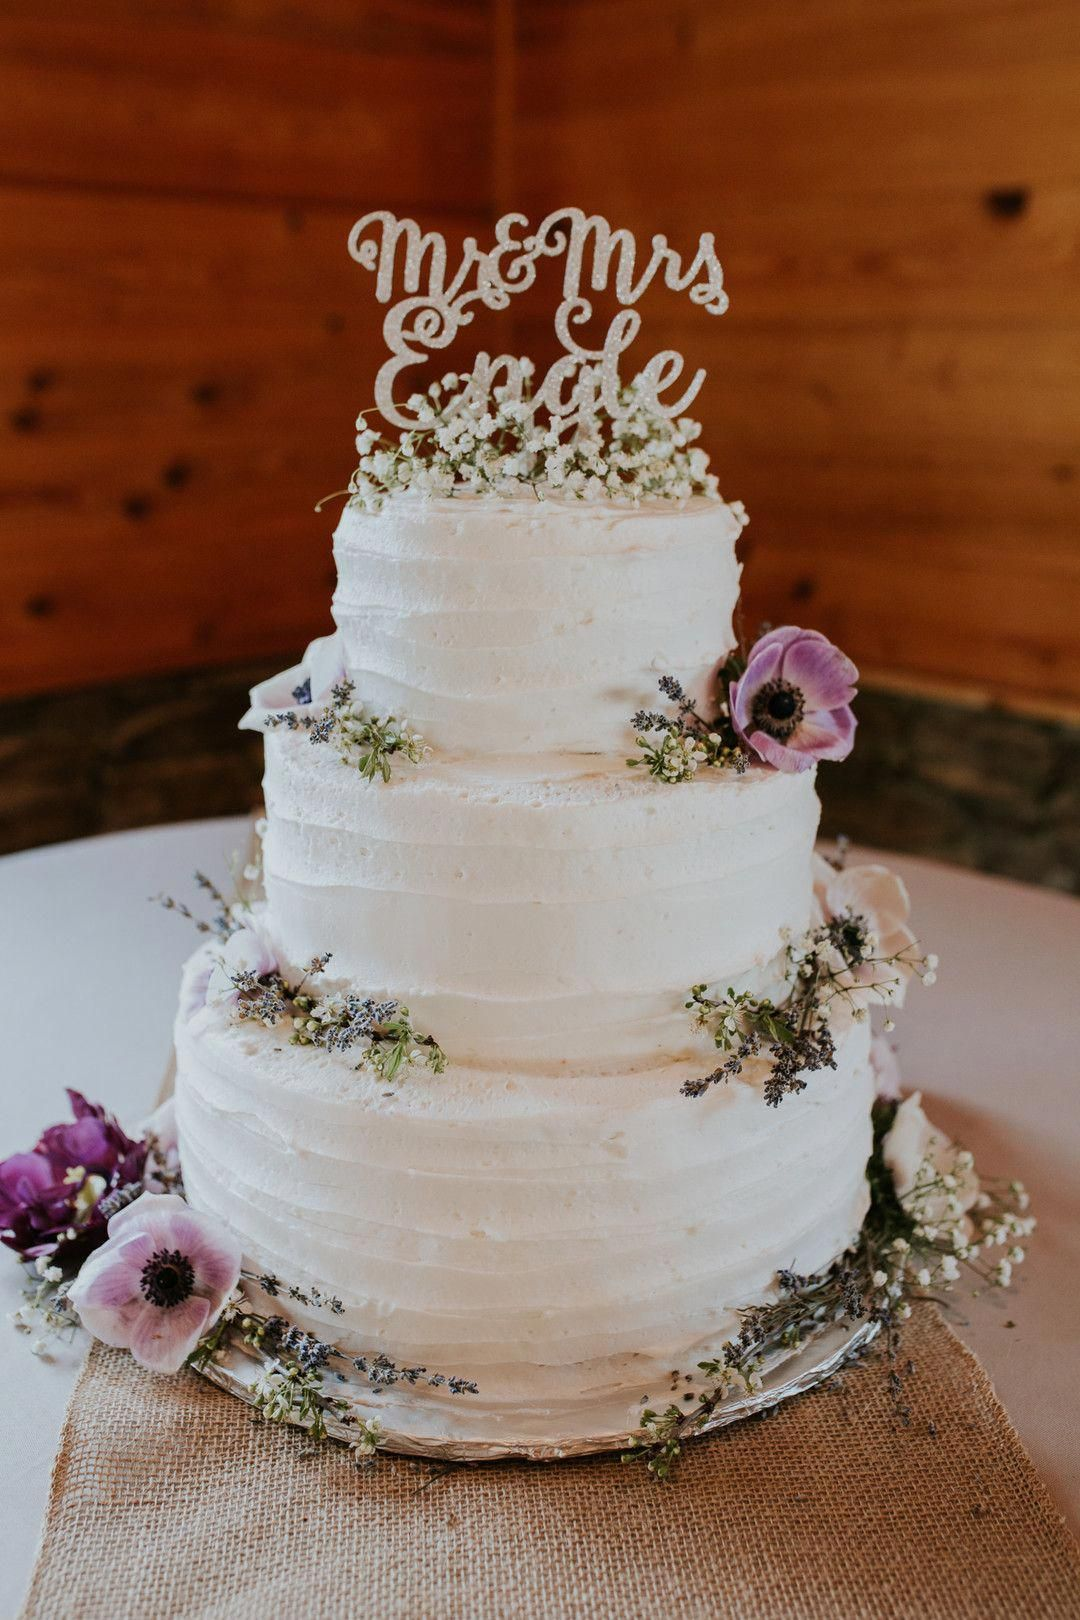 How Much Do Wedding Cakes Cost In 2020 Butterfly Wedding Cake Wedding Cakes Wedding Cake Cost